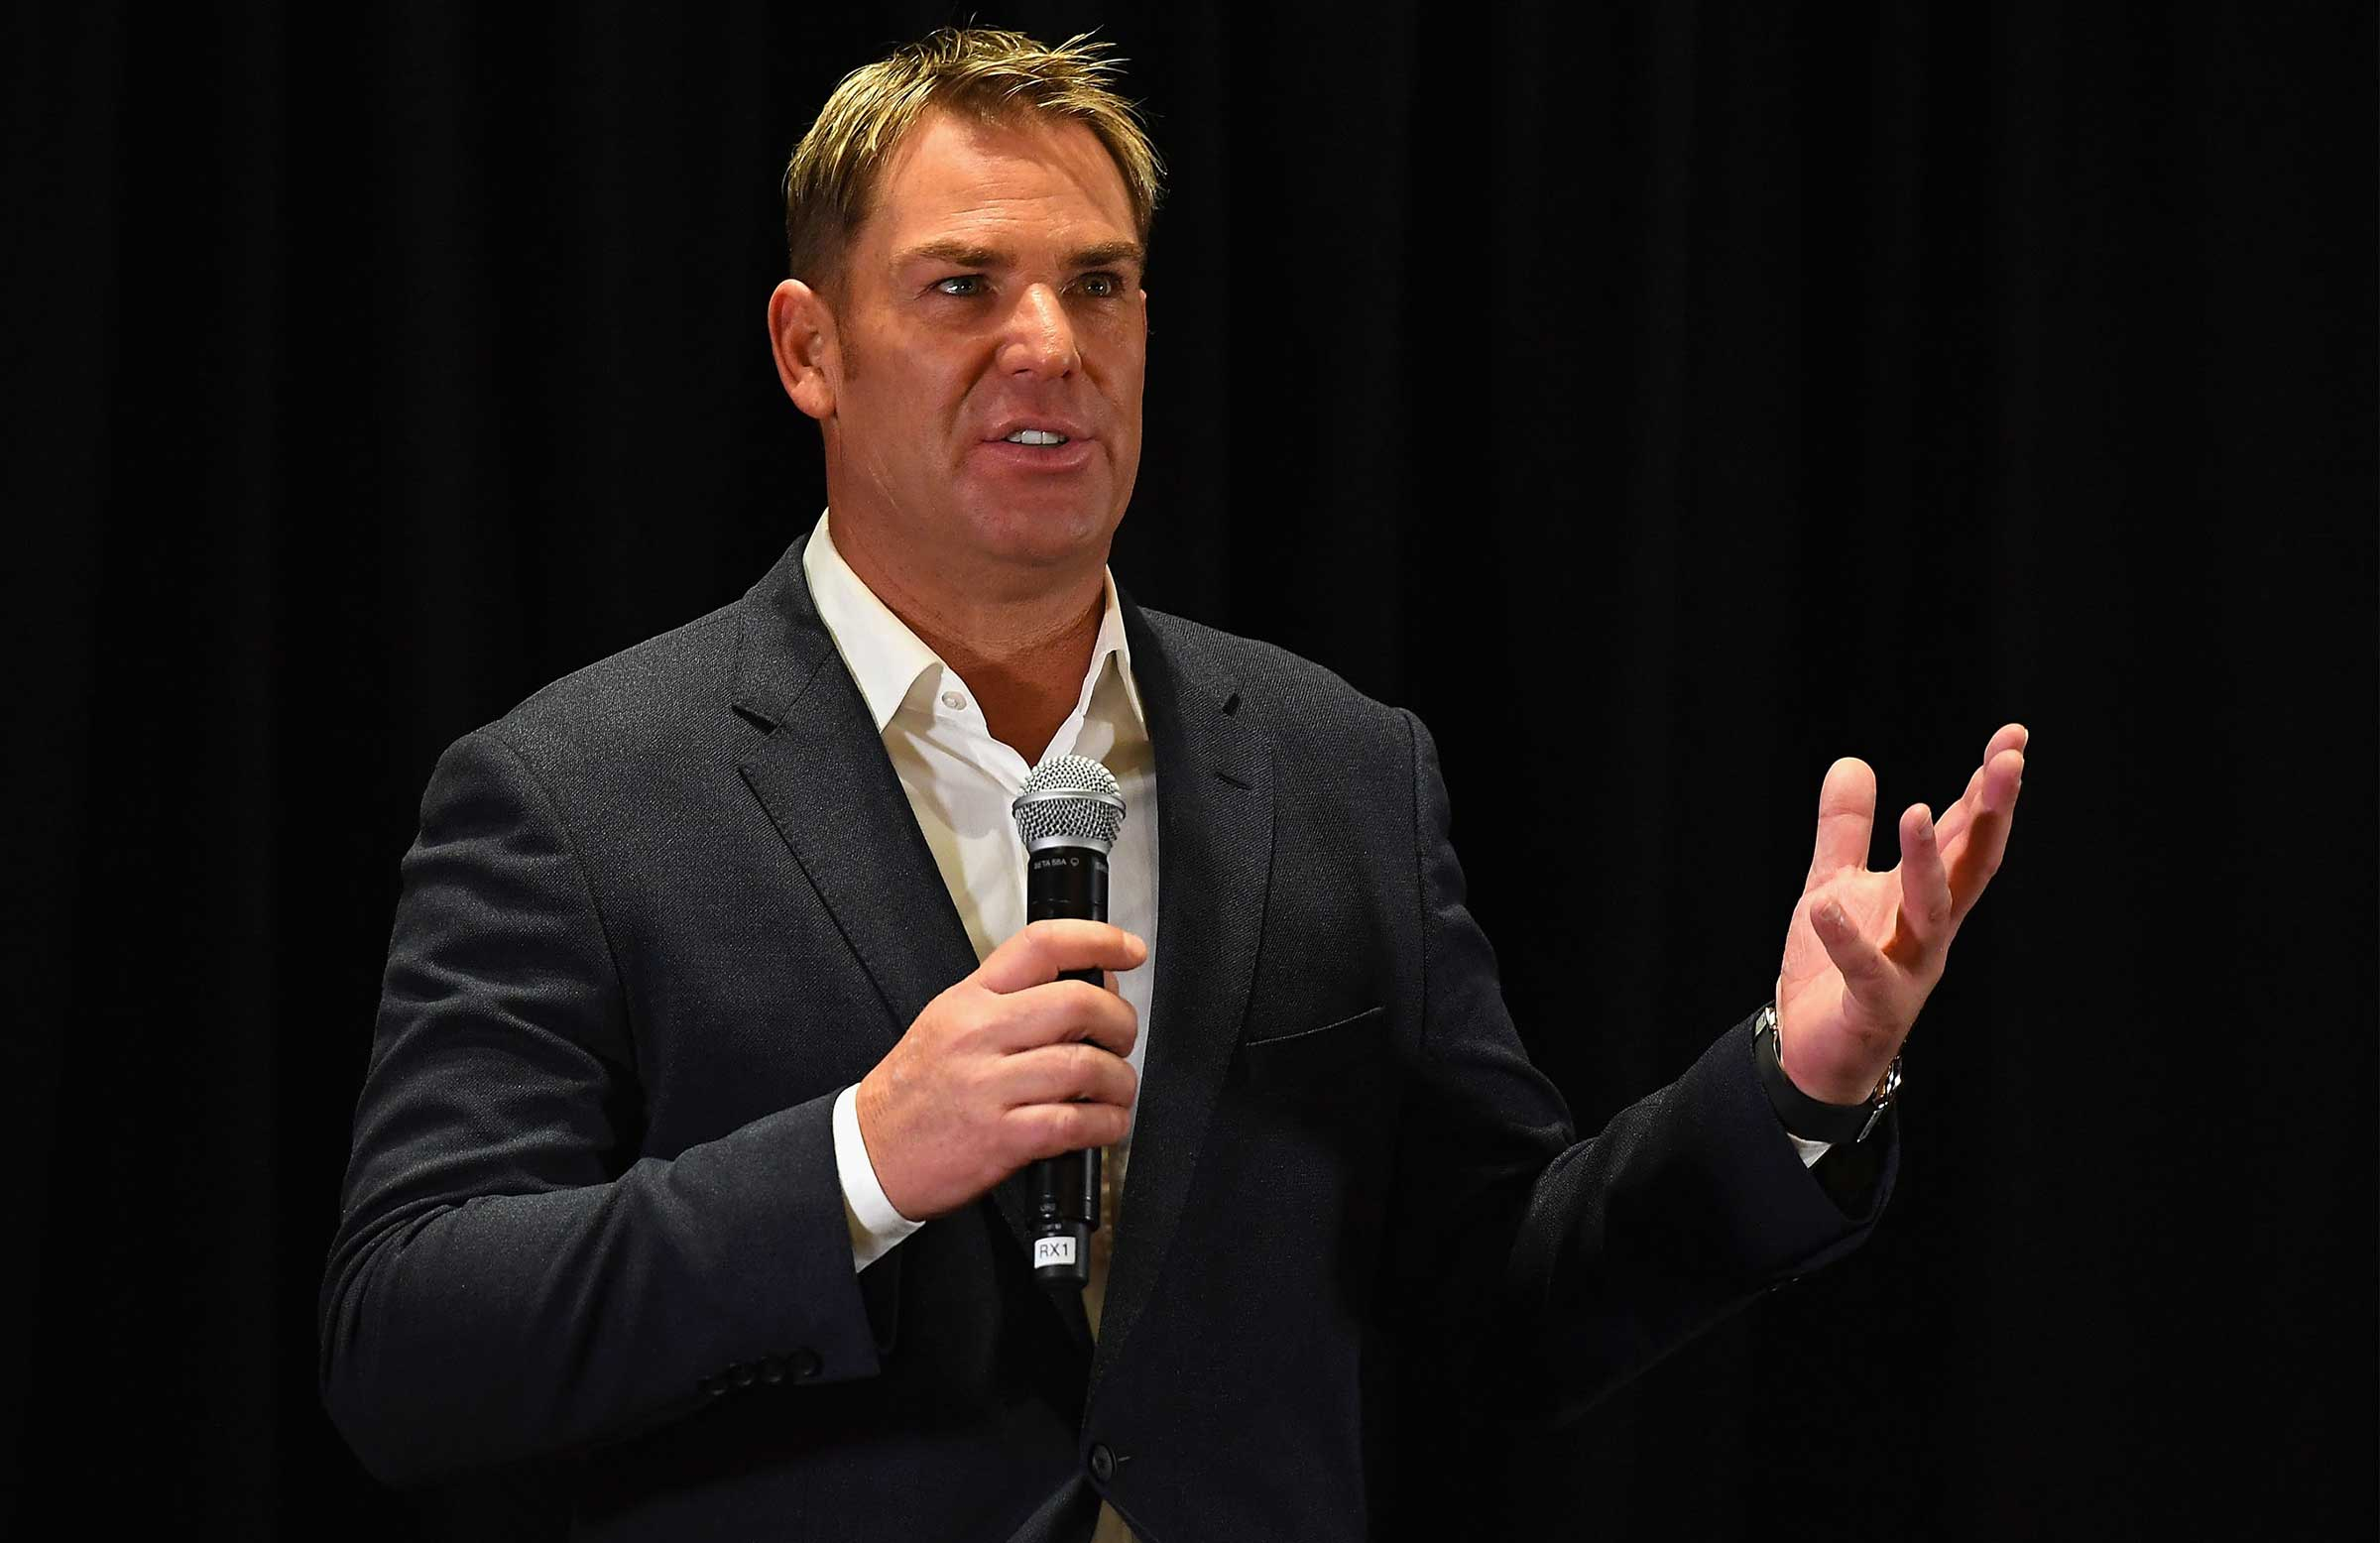 'Too expensive to afford': Shane Warne clears air on India coaching job